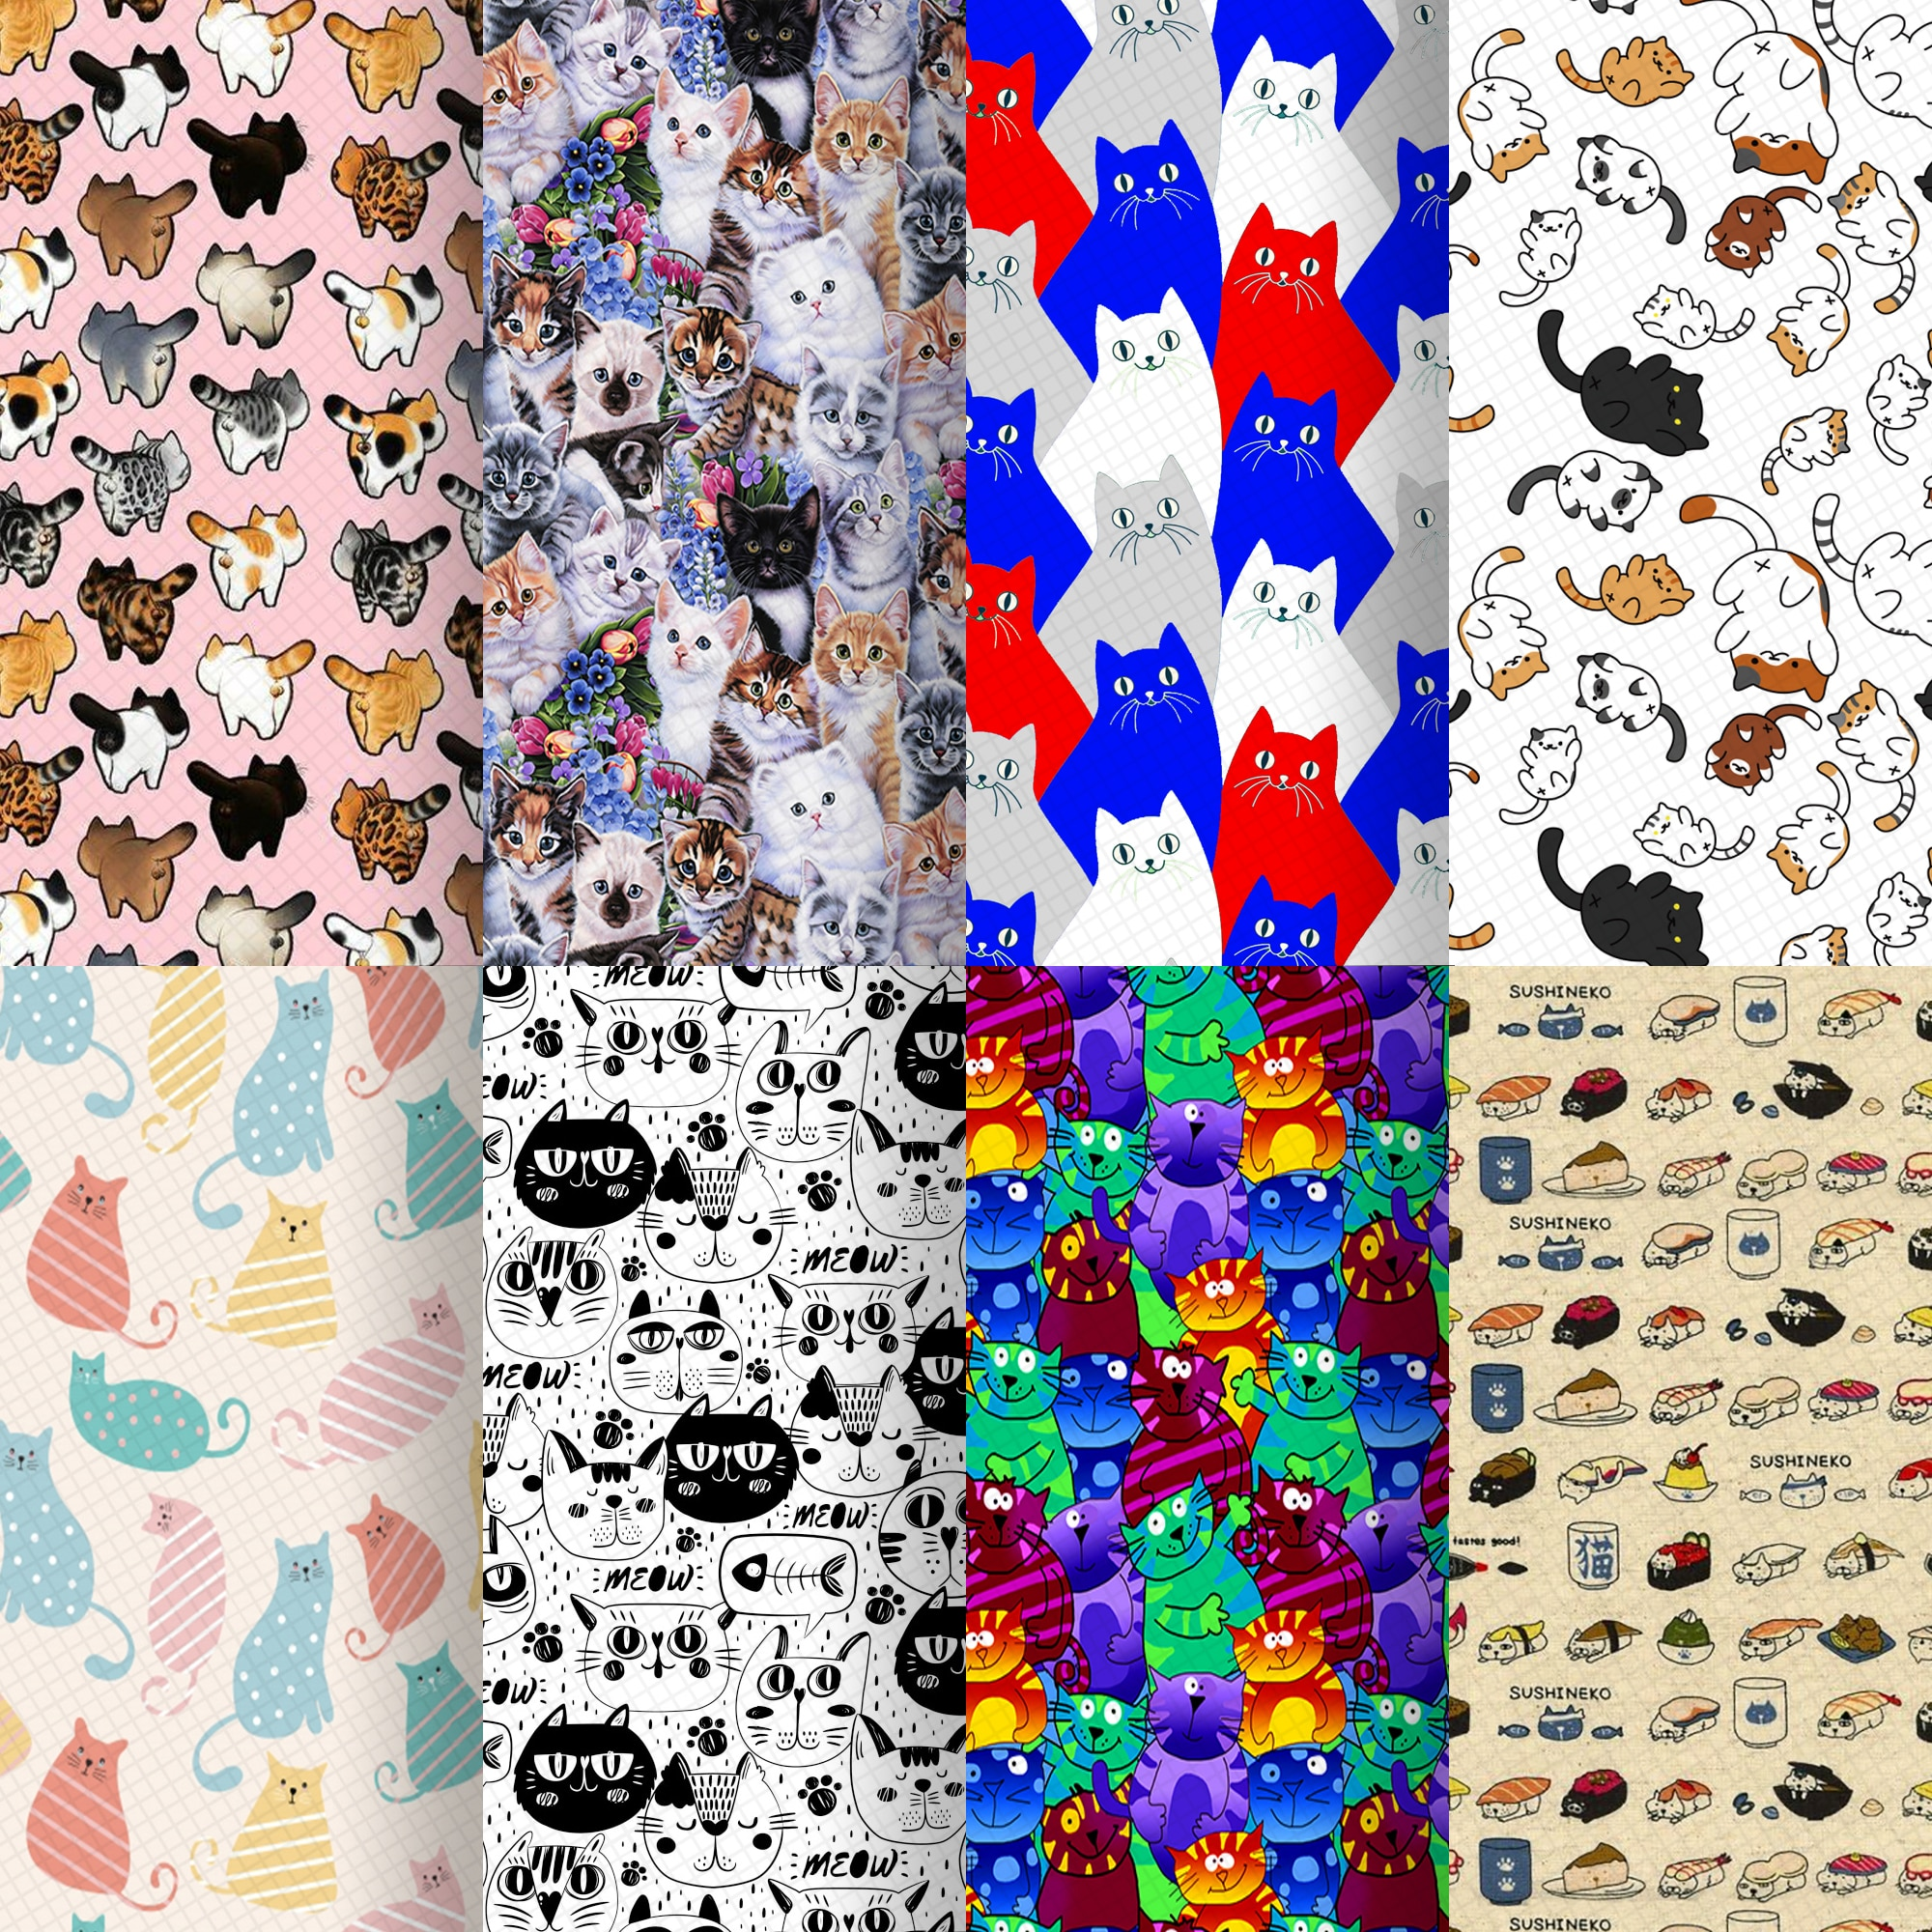 20*33cm Cat Faux Synthetic Leather Fabric For Bow-knot Bags Wallet Earring Phone Case Scrapbook DIY,1Yc16470